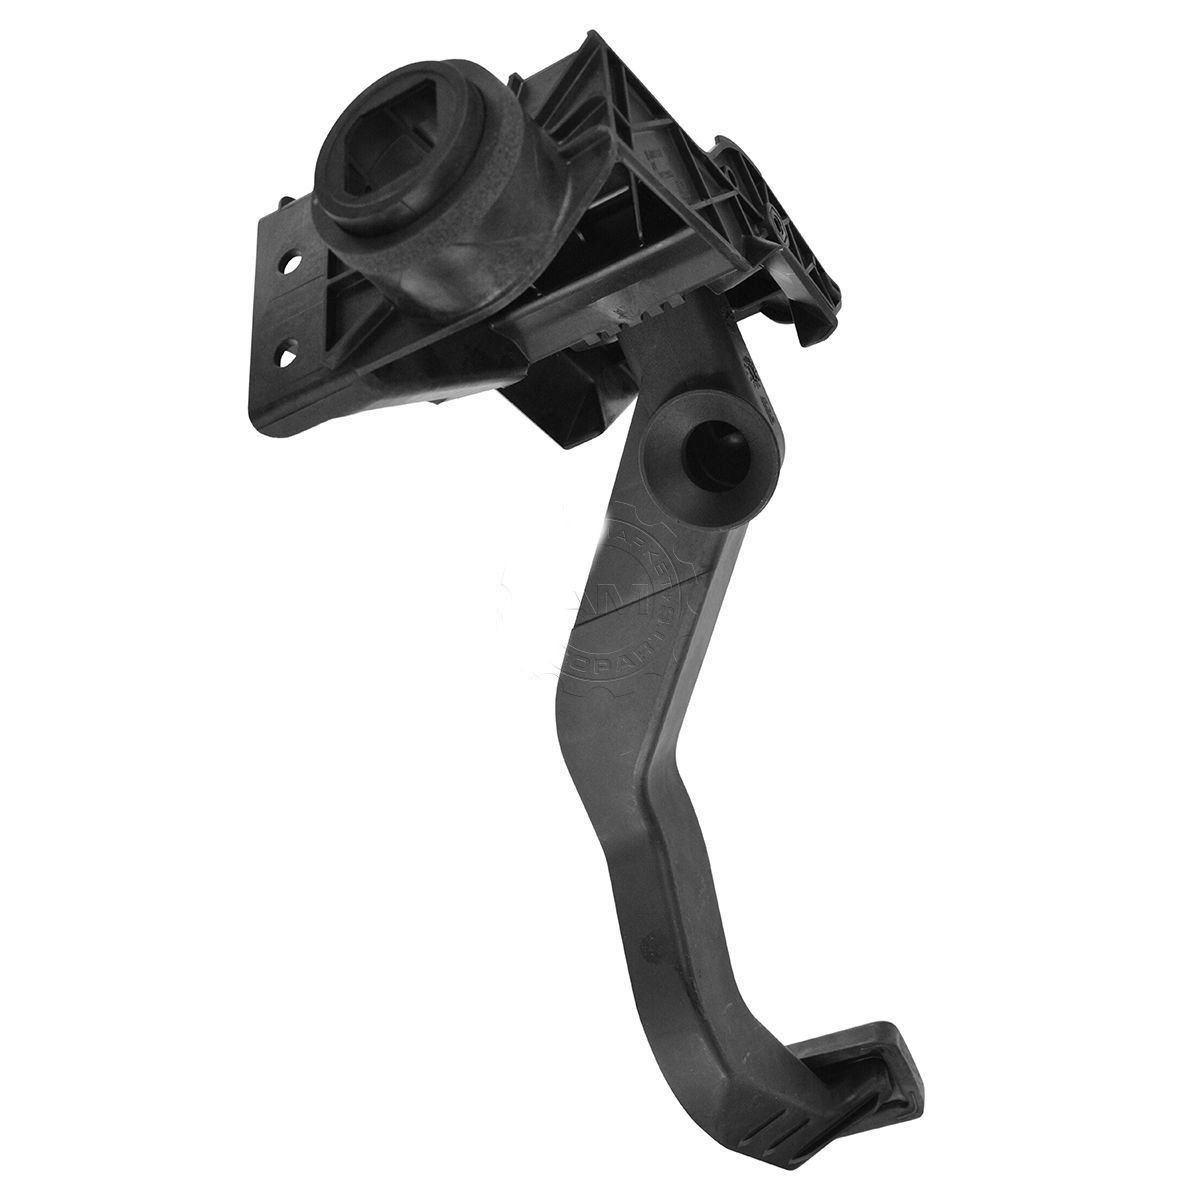 Amazon.com: OEM 15027983 Clutch Pedal & Bracket Assembly for Chevy Silverado GMC Sierra: Automotive